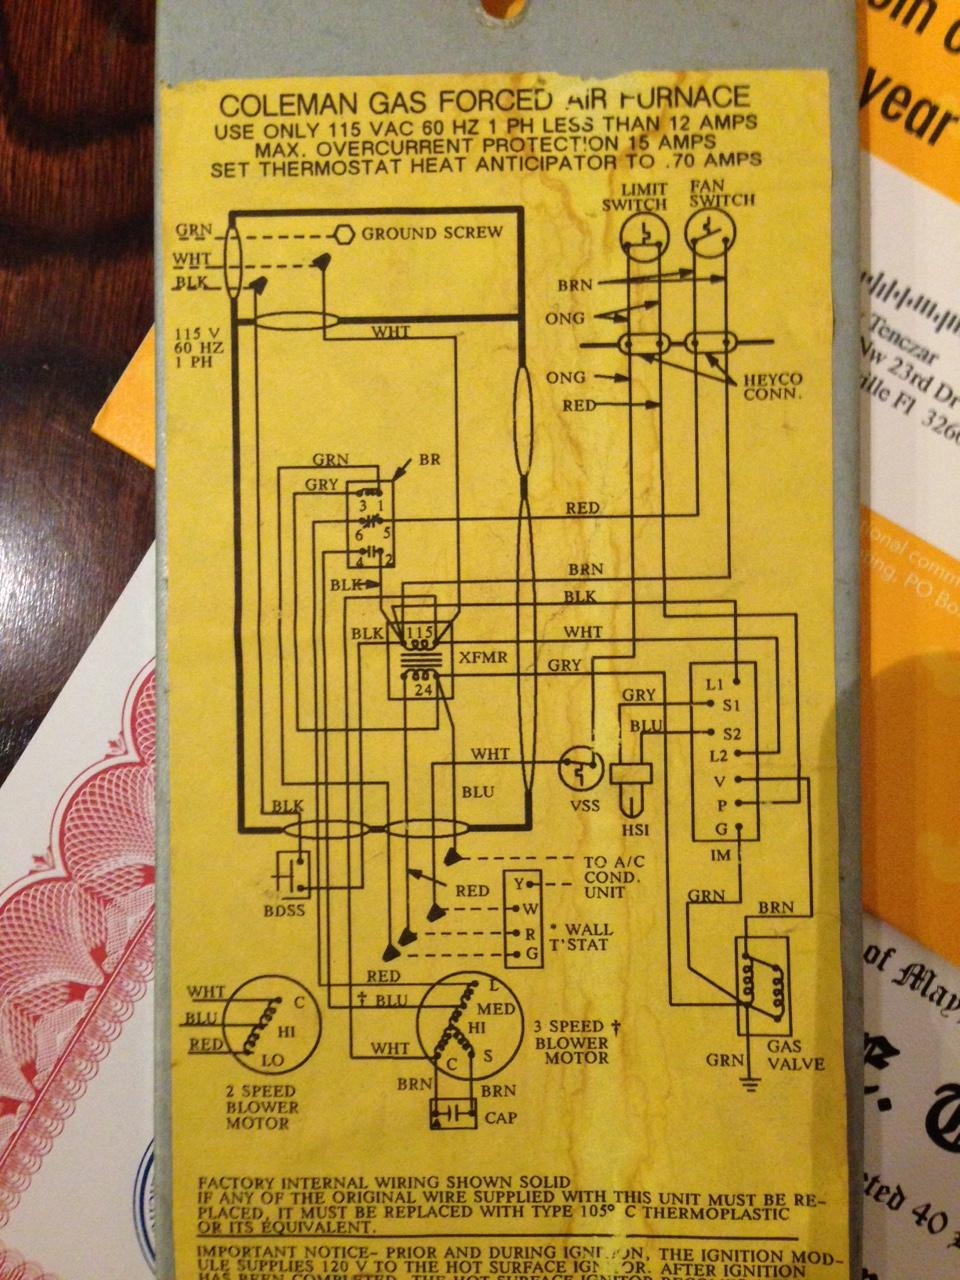 hight resolution of coleman furnace wiring diagram wiring diagram paper coleman furnace wiring diagram wiring diagram operations coleman furnace